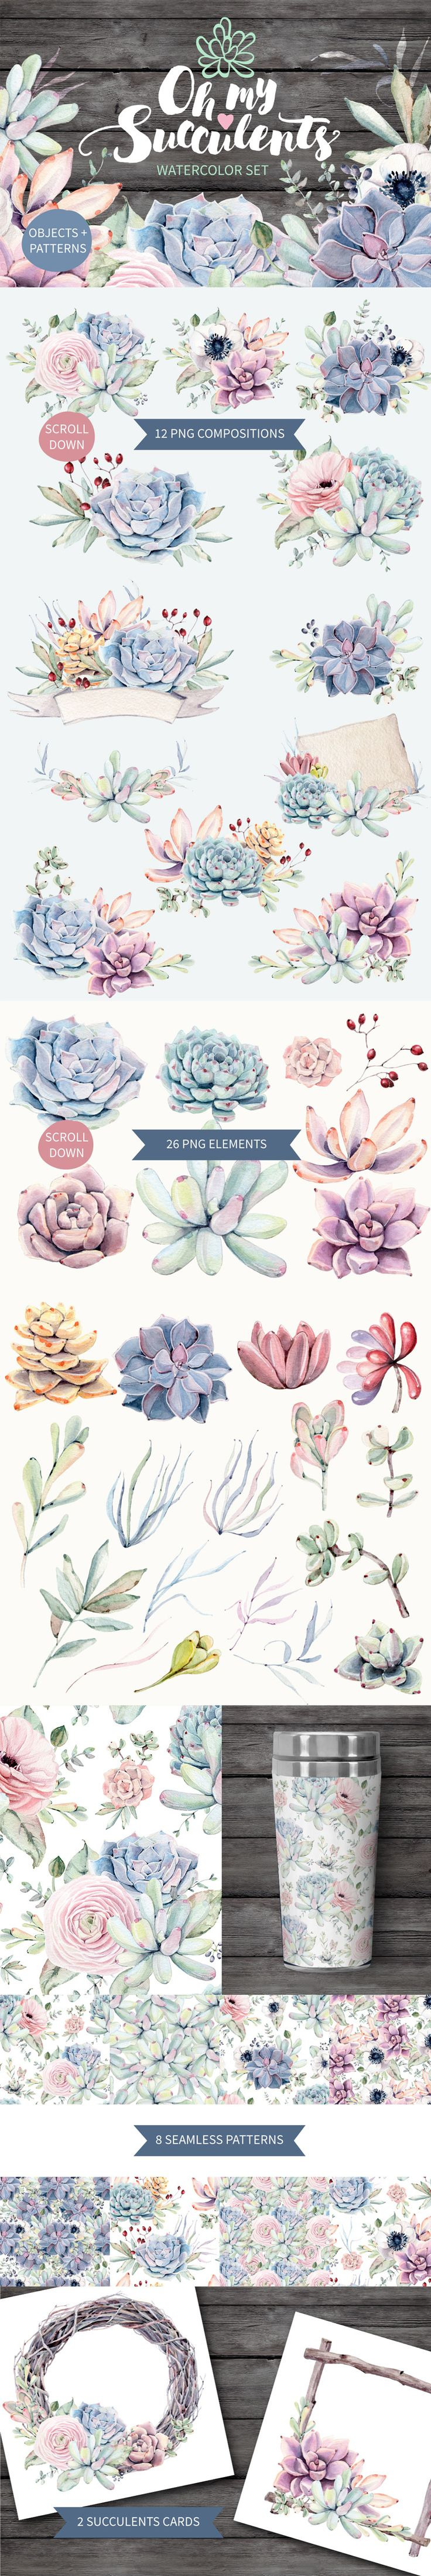 graphics design cute elegant cacti cactus watercolor clip art aqua green Clip Art Wedding Invitation Watercolor Clipart Succulent Plants Pocket Scrapbooking / Project Life / Journaling / Memory Keeping graphic designer stock image invitations PNG